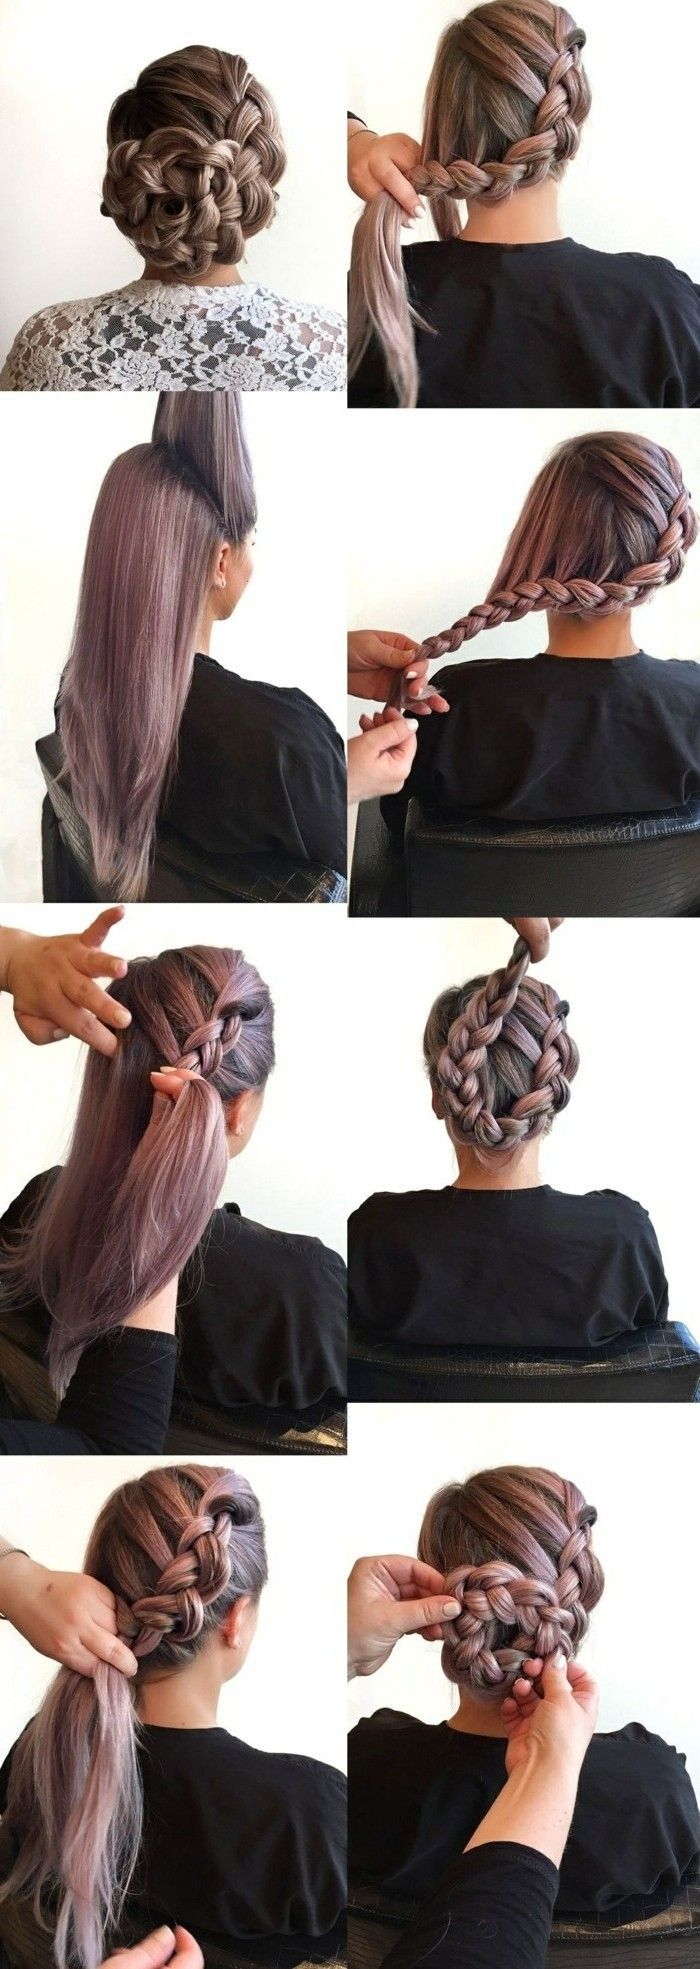 ▷ 1001 + ideas for beautiful hairstyles plus DIY instructions -